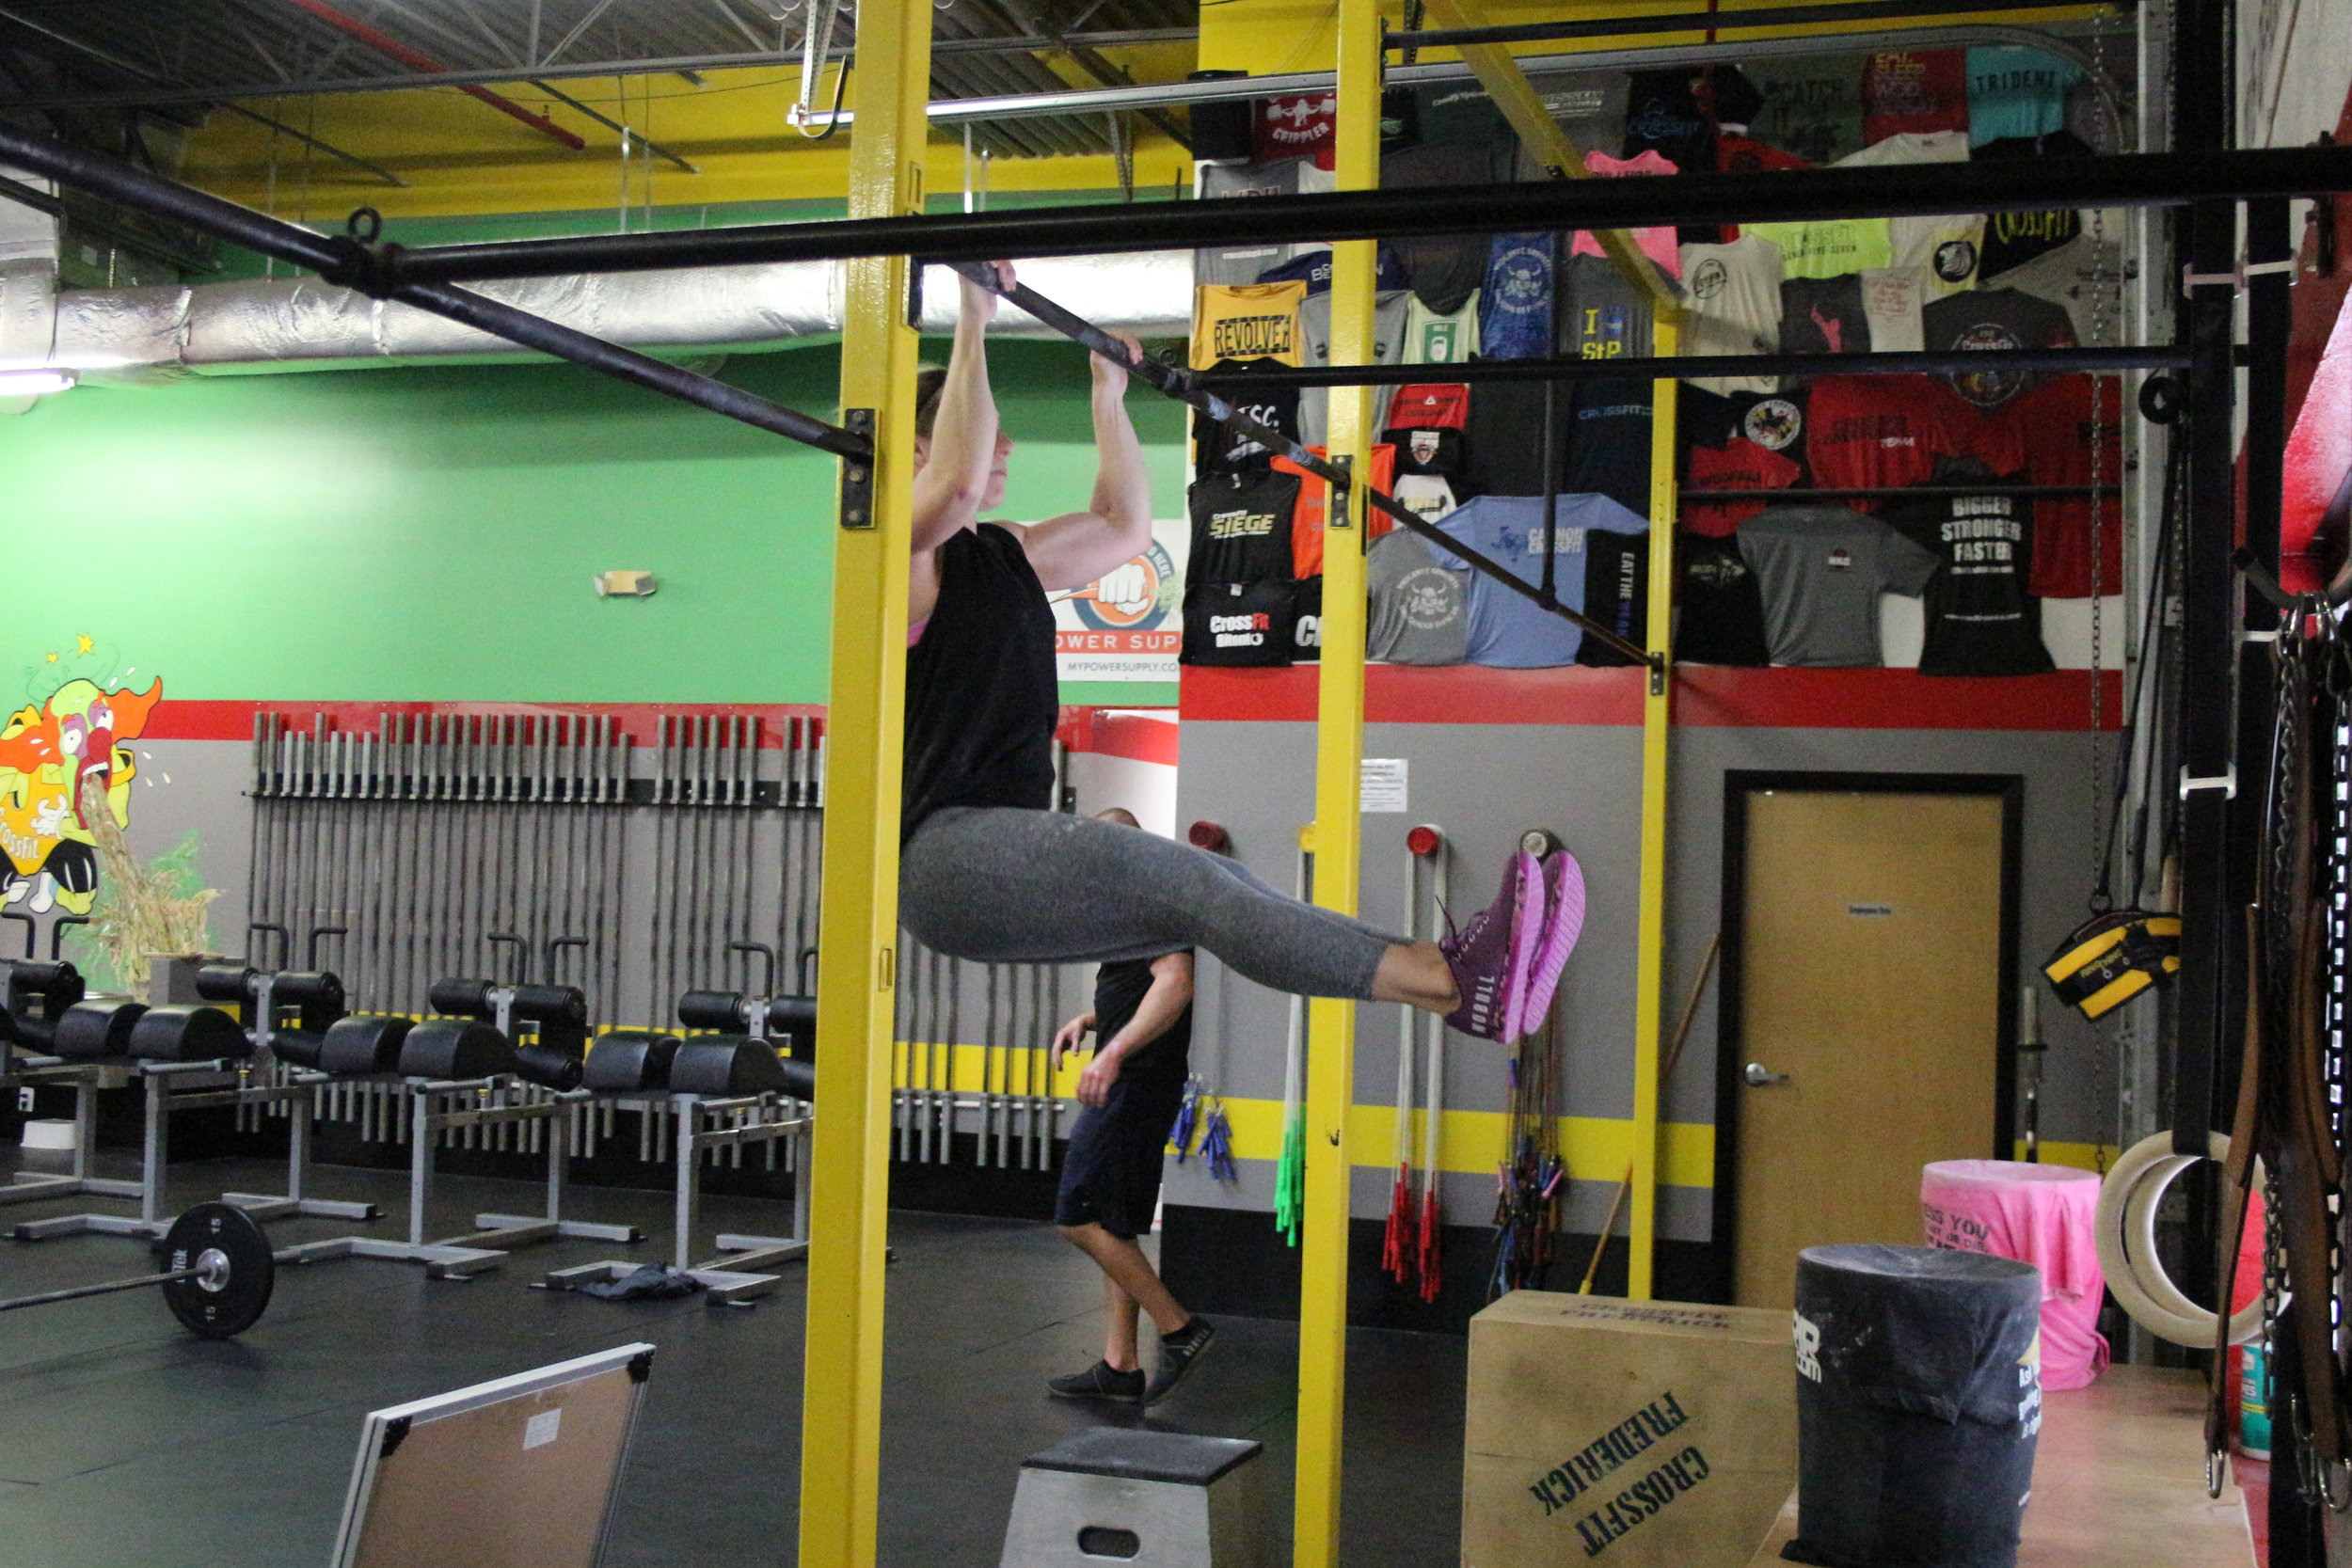 L-Pull-up performed by our Coach Stacy.